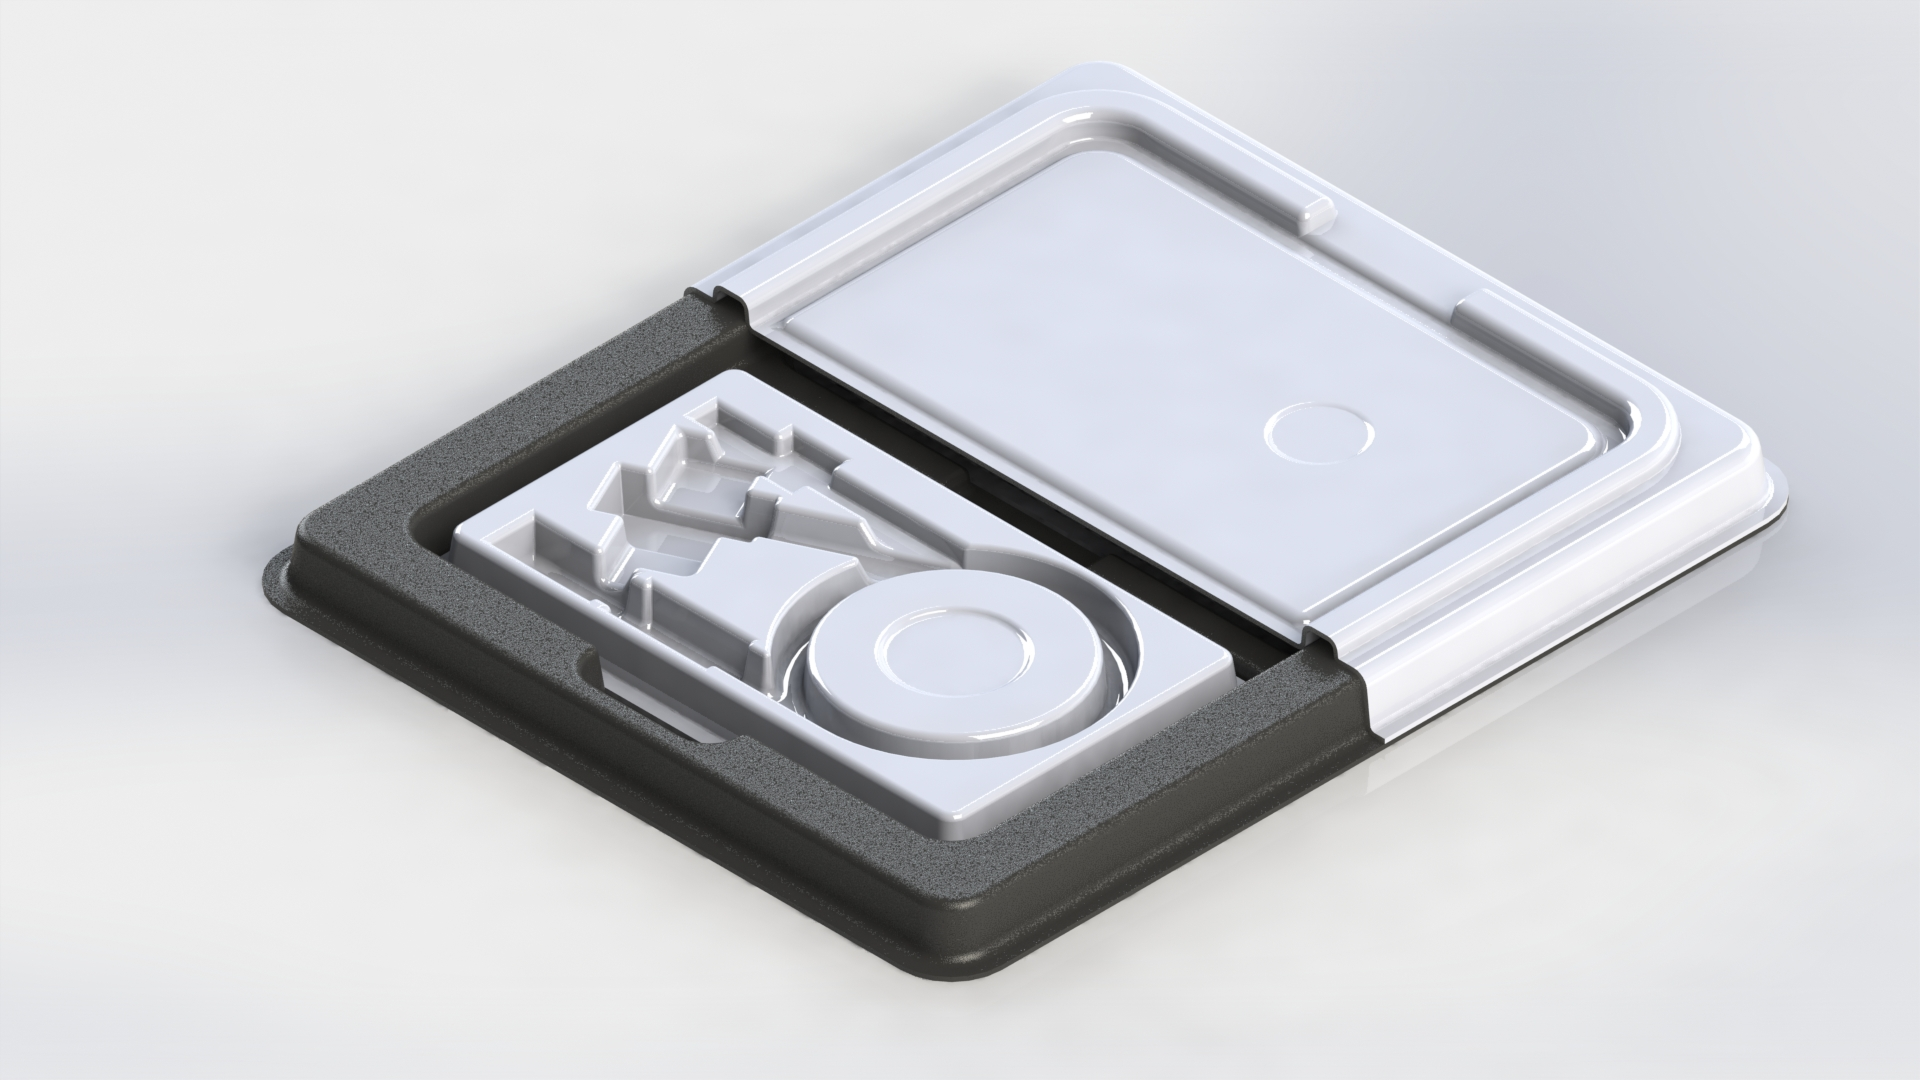 CAD 3D image of a mold for custom thermoformed packaging.